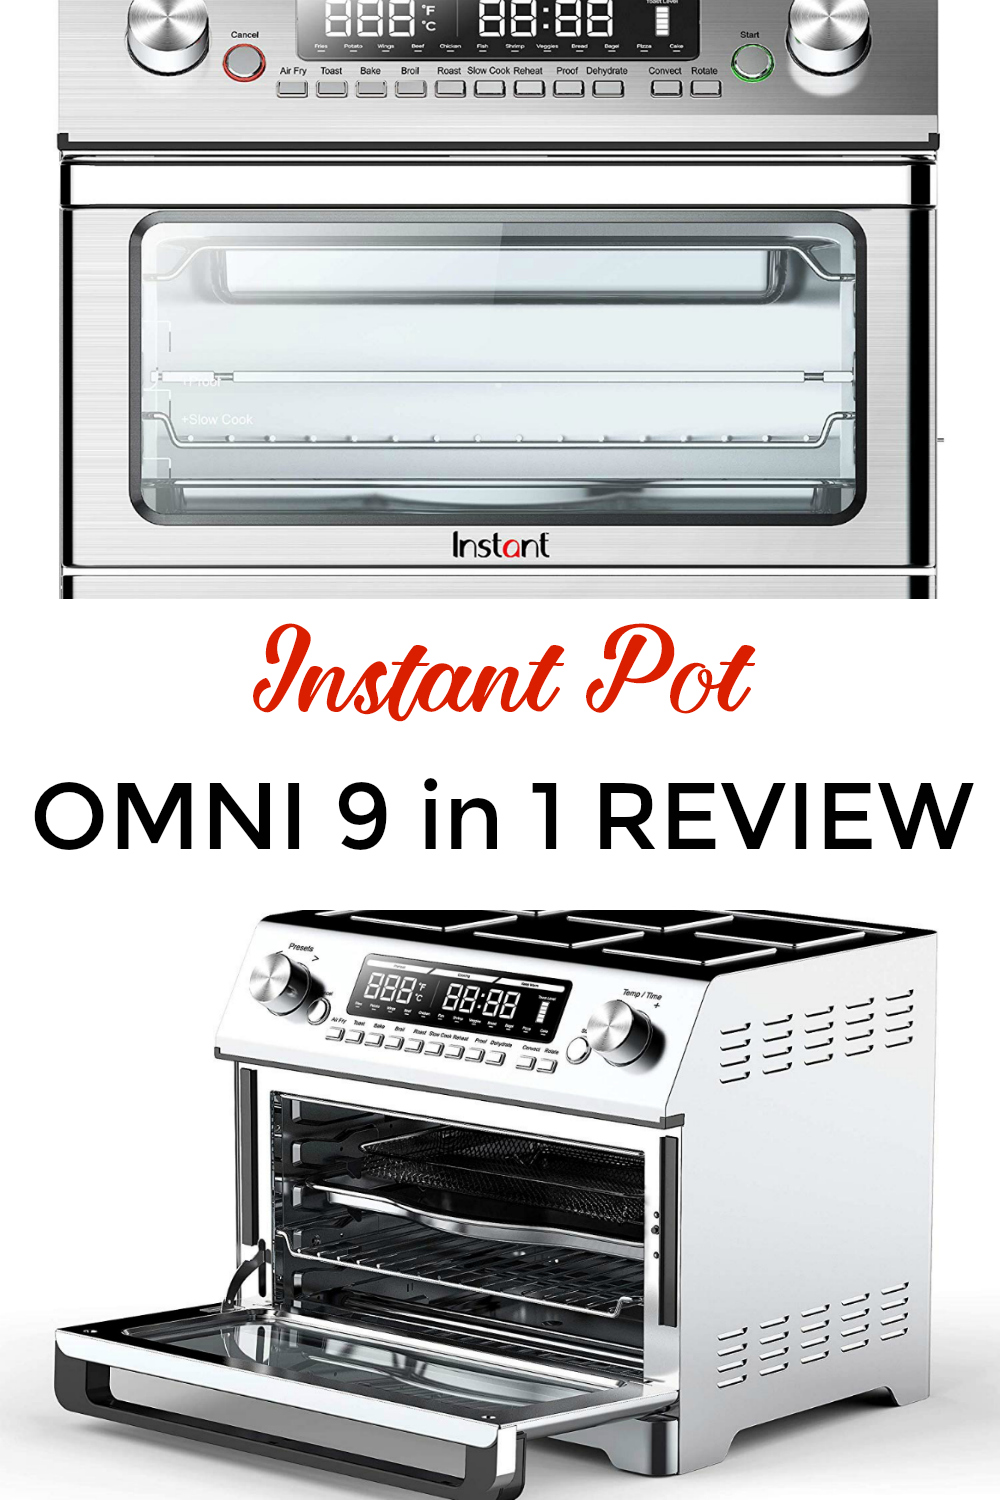 nstant Pot Omni plus 9 in 1 Review